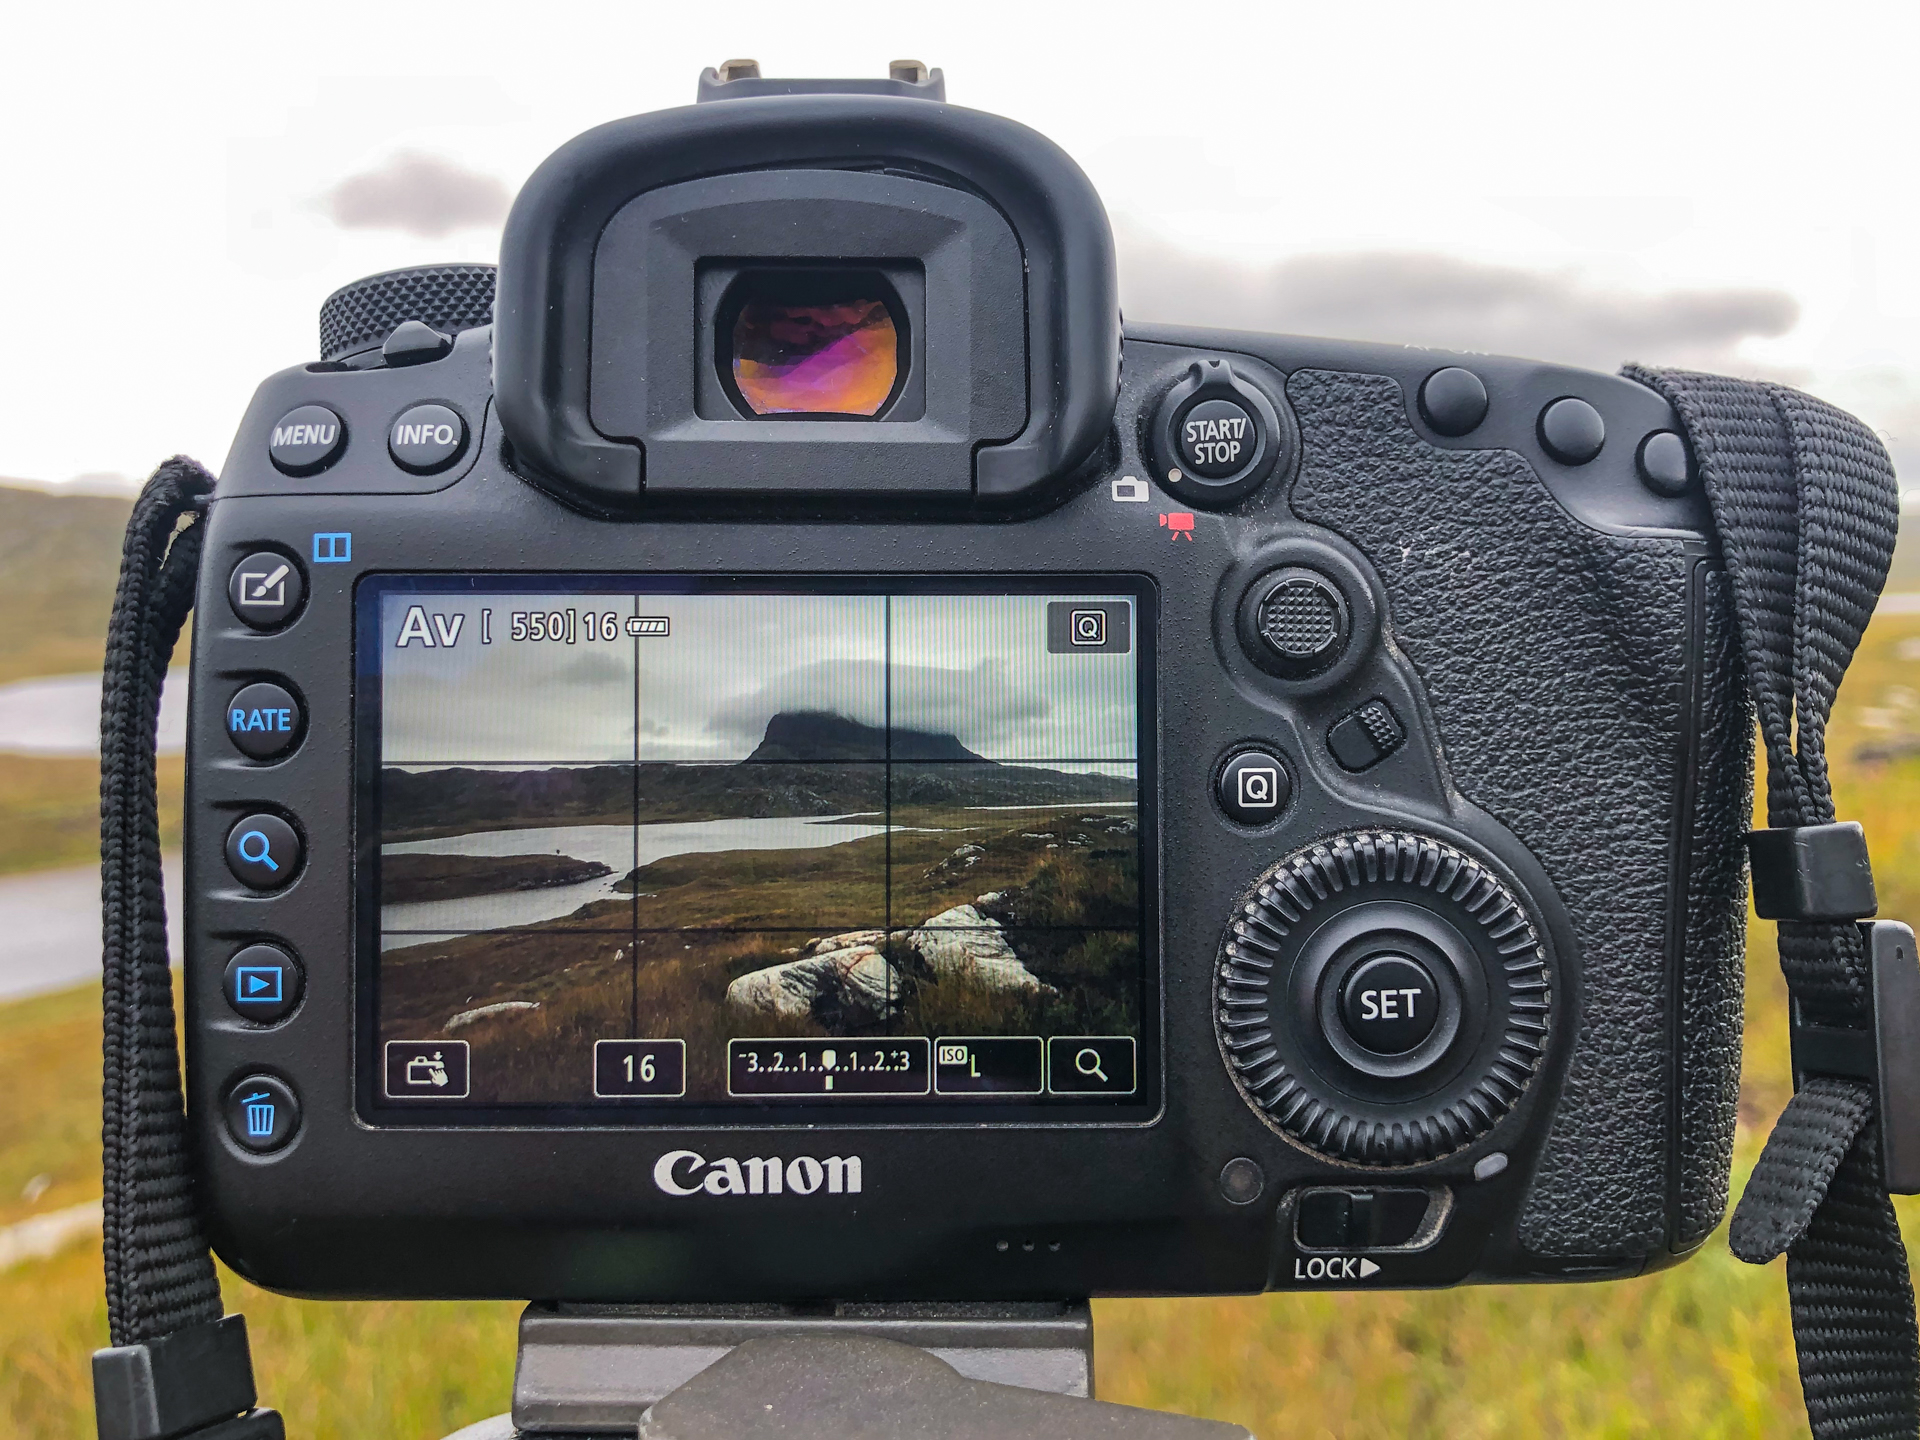 LCD view of a composition on the back of a digital camera with a Rule of Thirds overlay